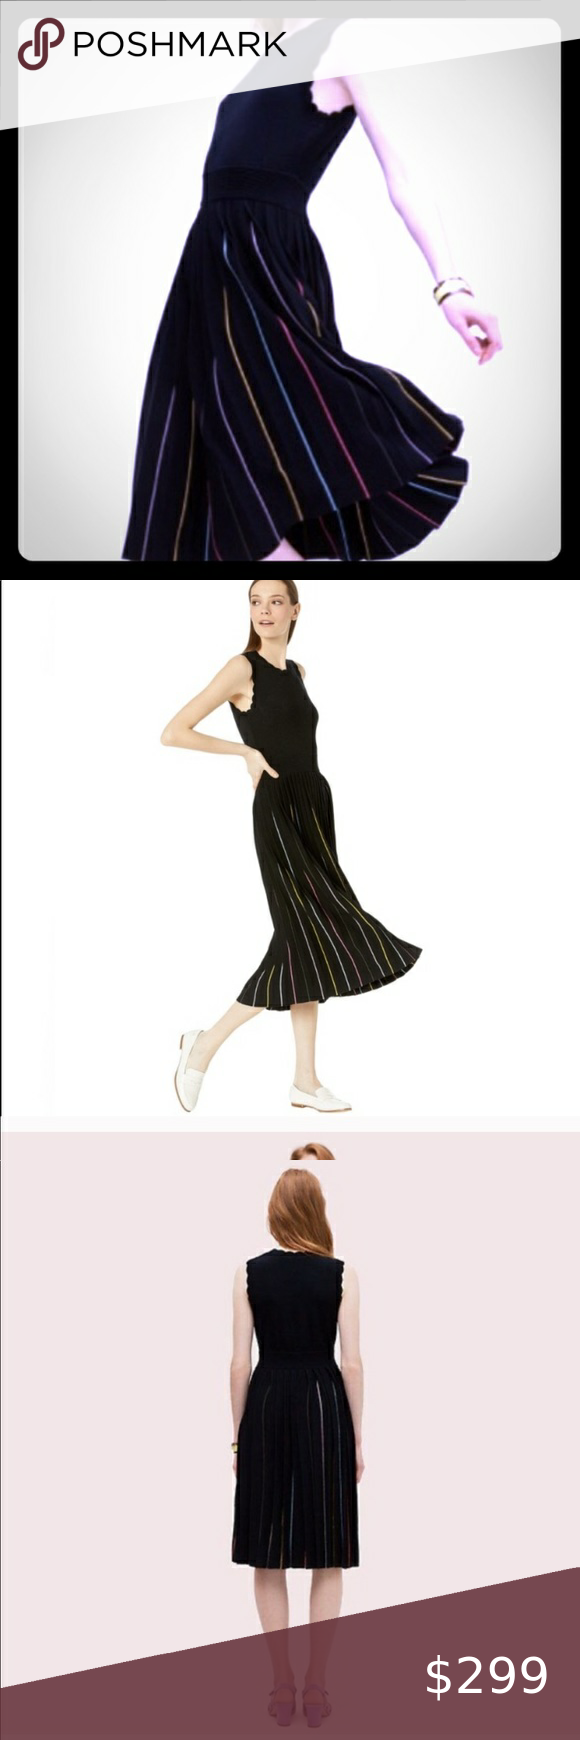 Kate Spade Black Dress This Dress Is New With Tags Size Xl Oumu1191 Material 67 Viscose 33 Polyester Black Dress With Black Dress Kate Spade Black Dresses [ 1740 x 580 Pixel ]